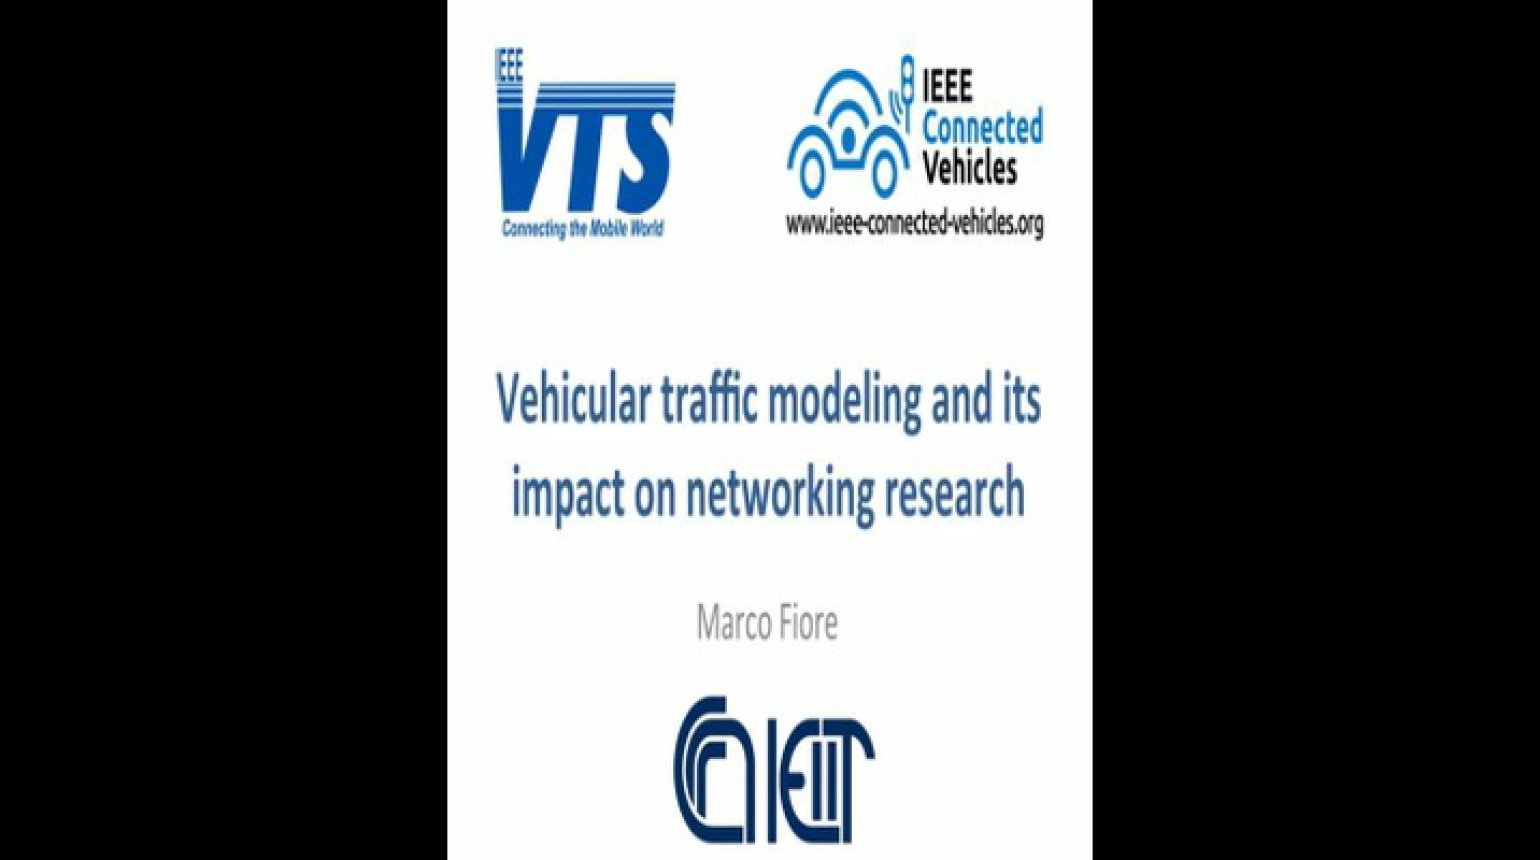 Video - Vehicular Traffic Modeling and its Impact on Networking Research